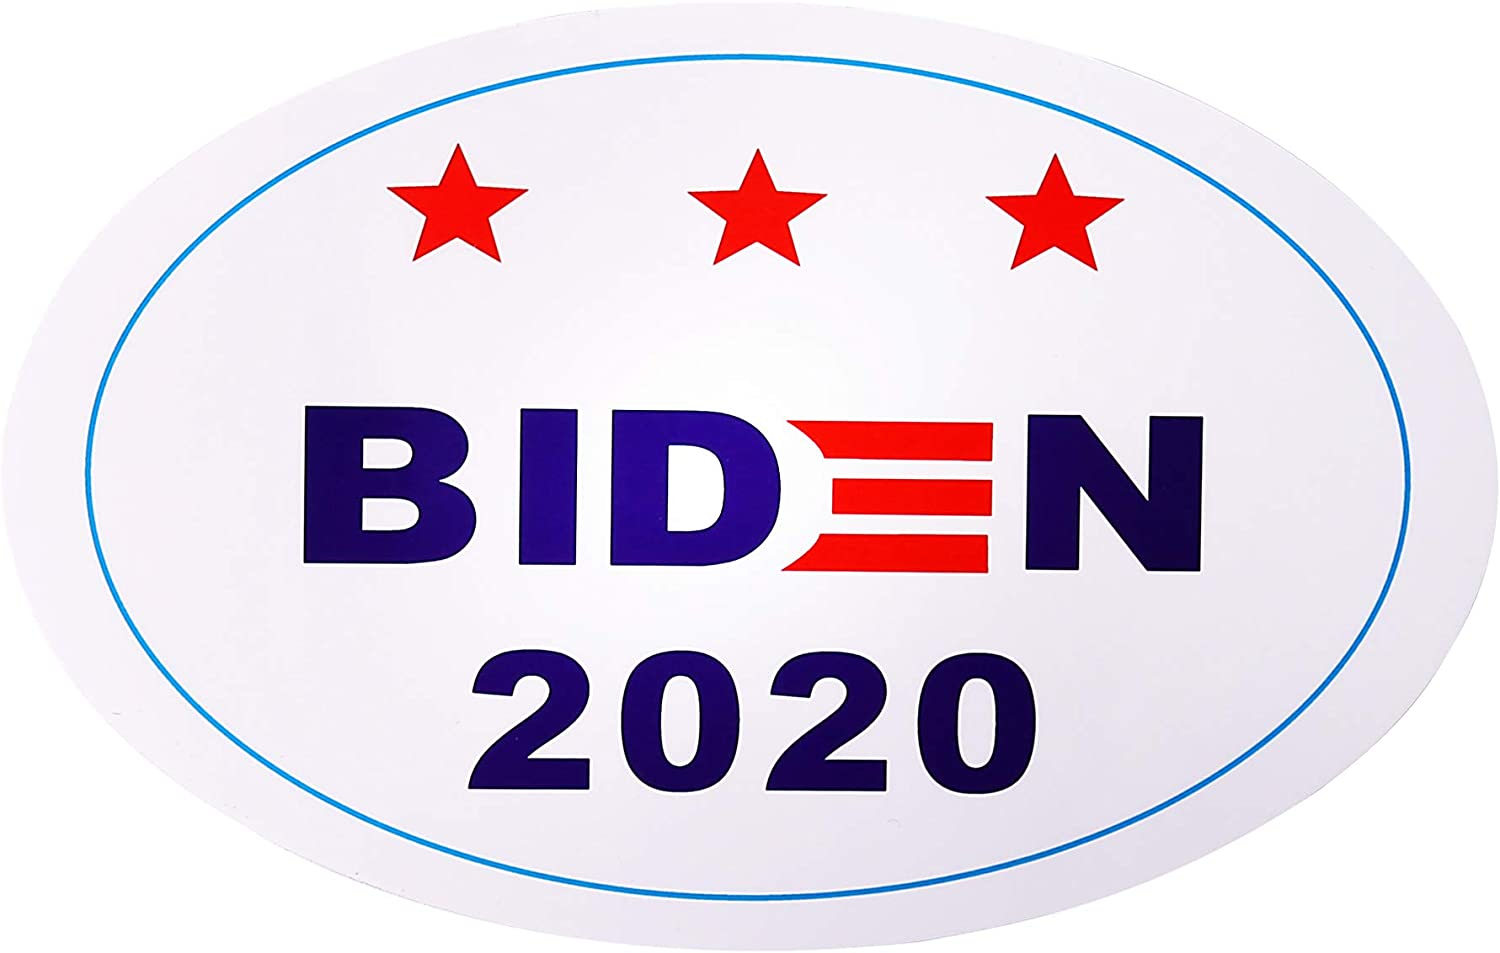 Biden 2020 Sticker PVC Joe Car Bumper Stickers for Presidential Election Window Laptop Sticker Decal 5pcs 5.1 x 3.3 inch